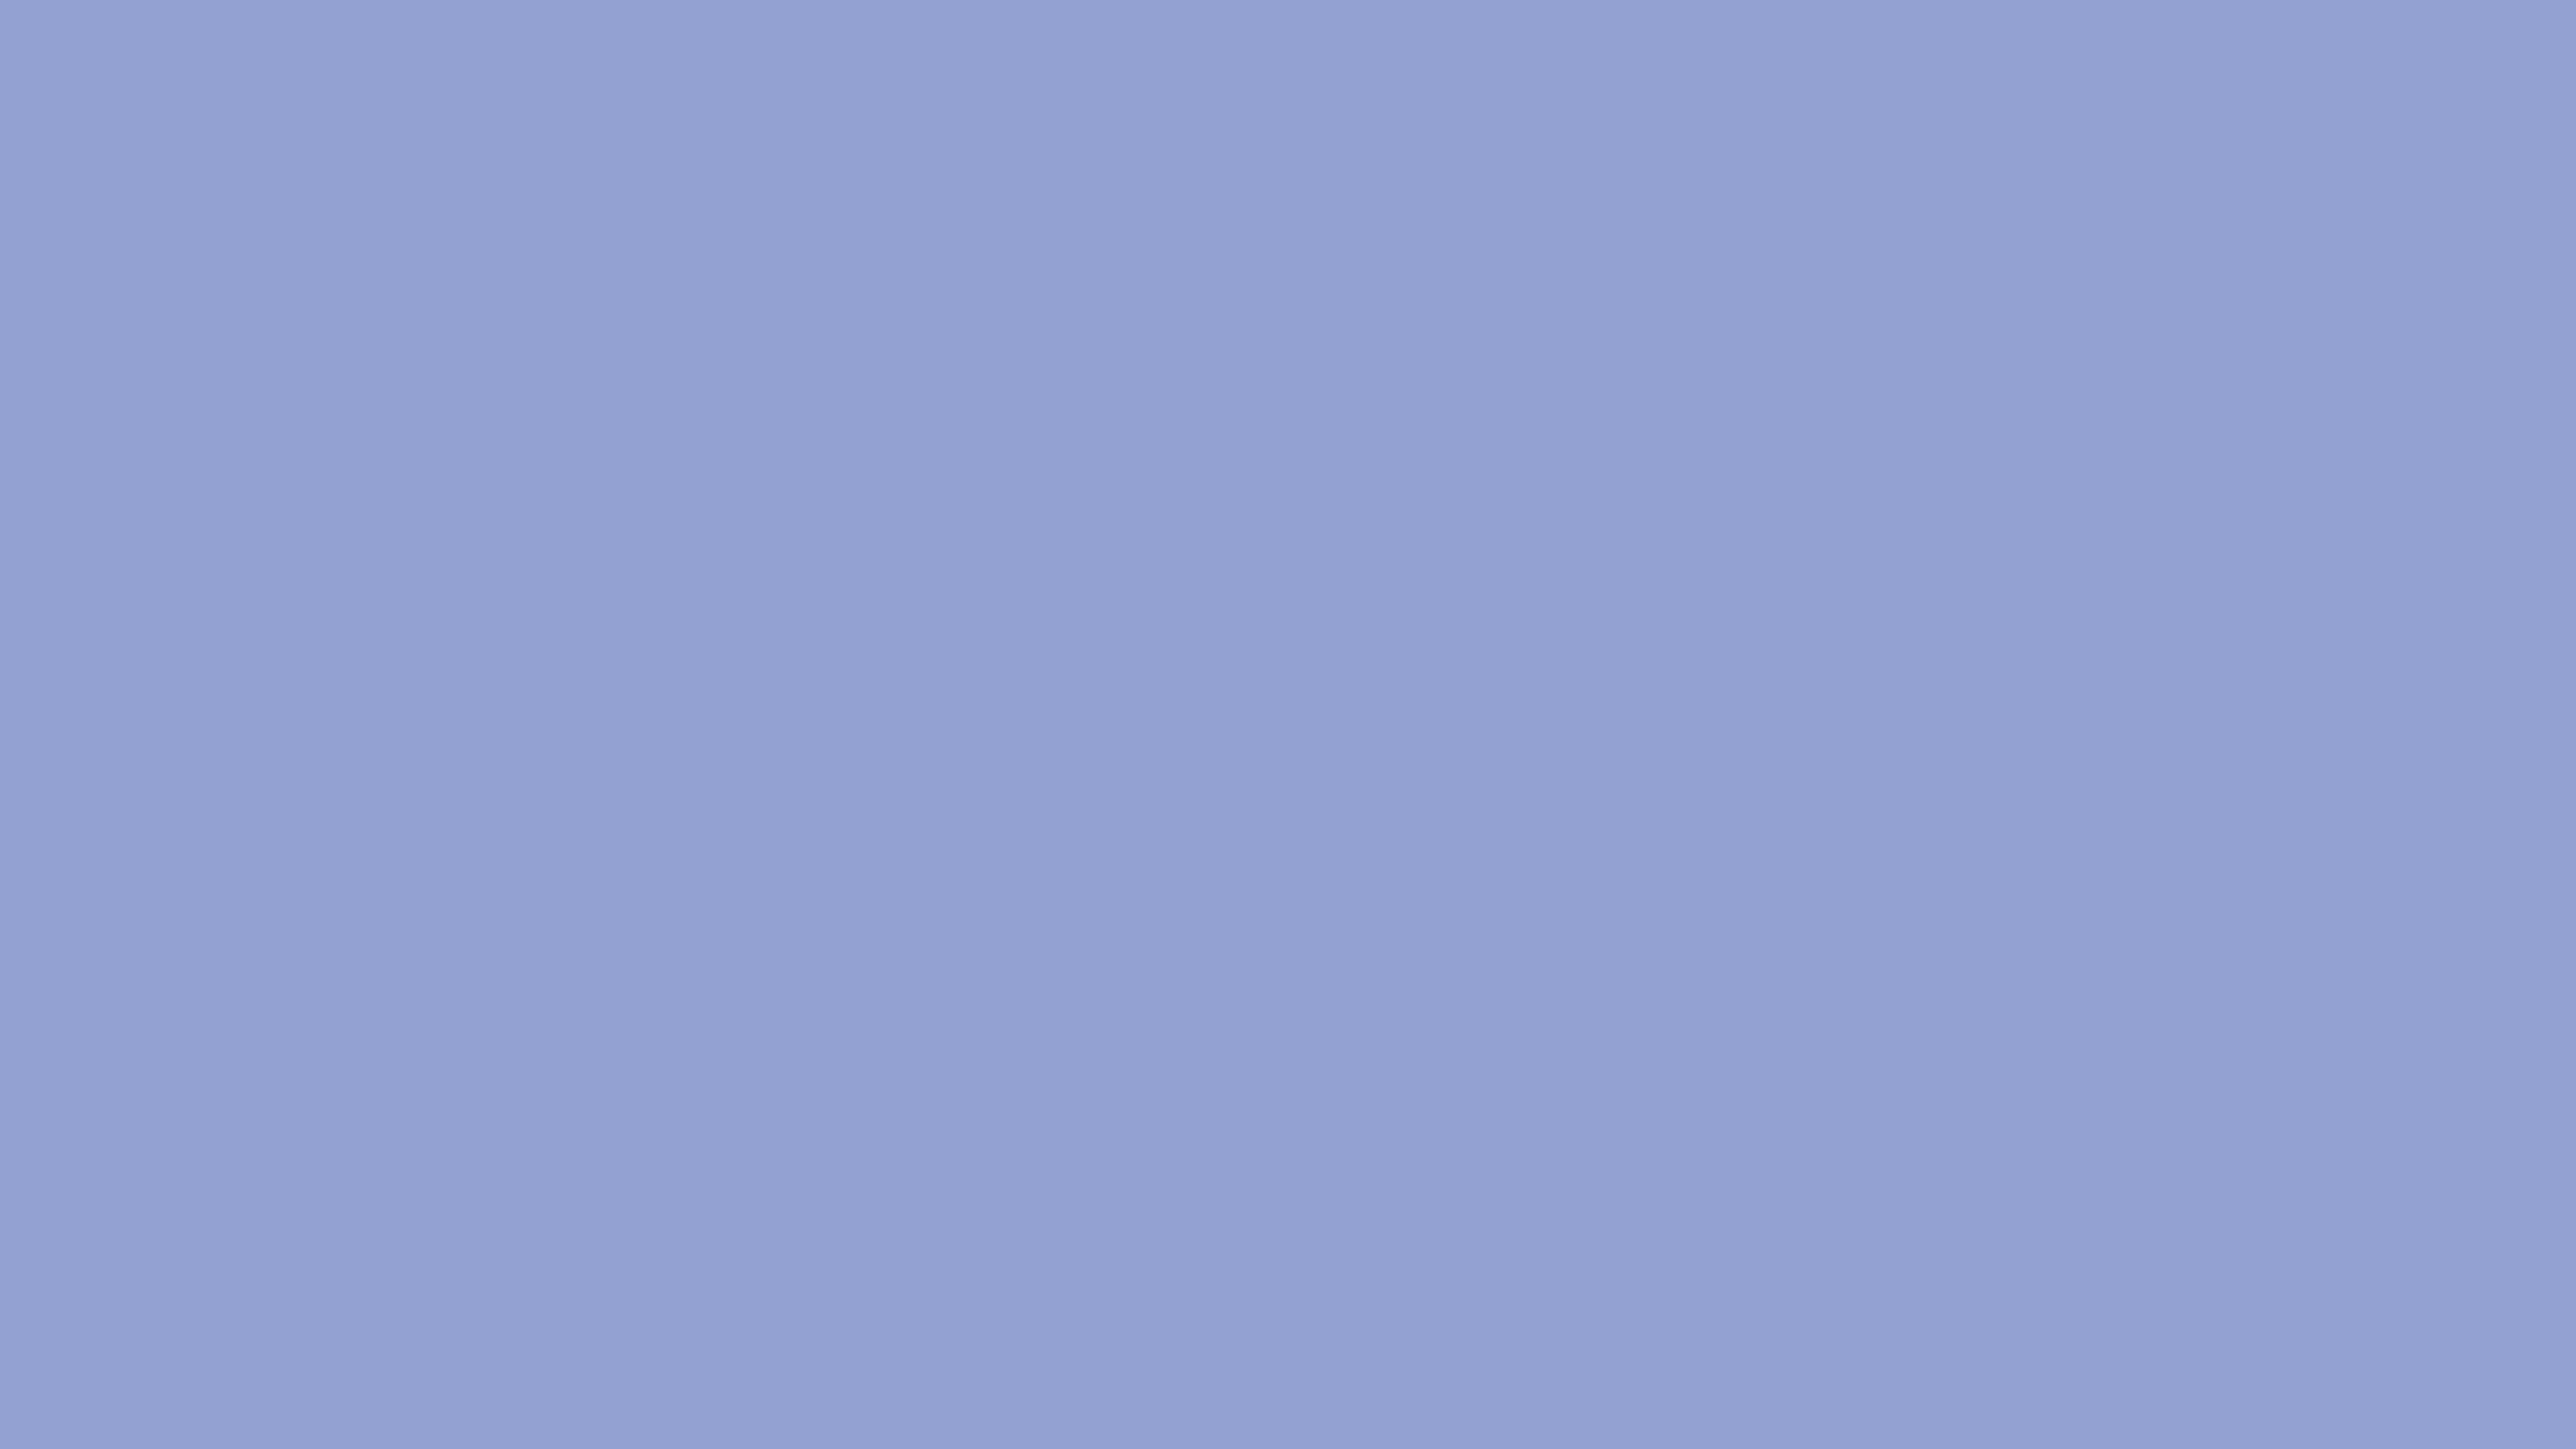 4096x2304 Ceil Solid Color Background